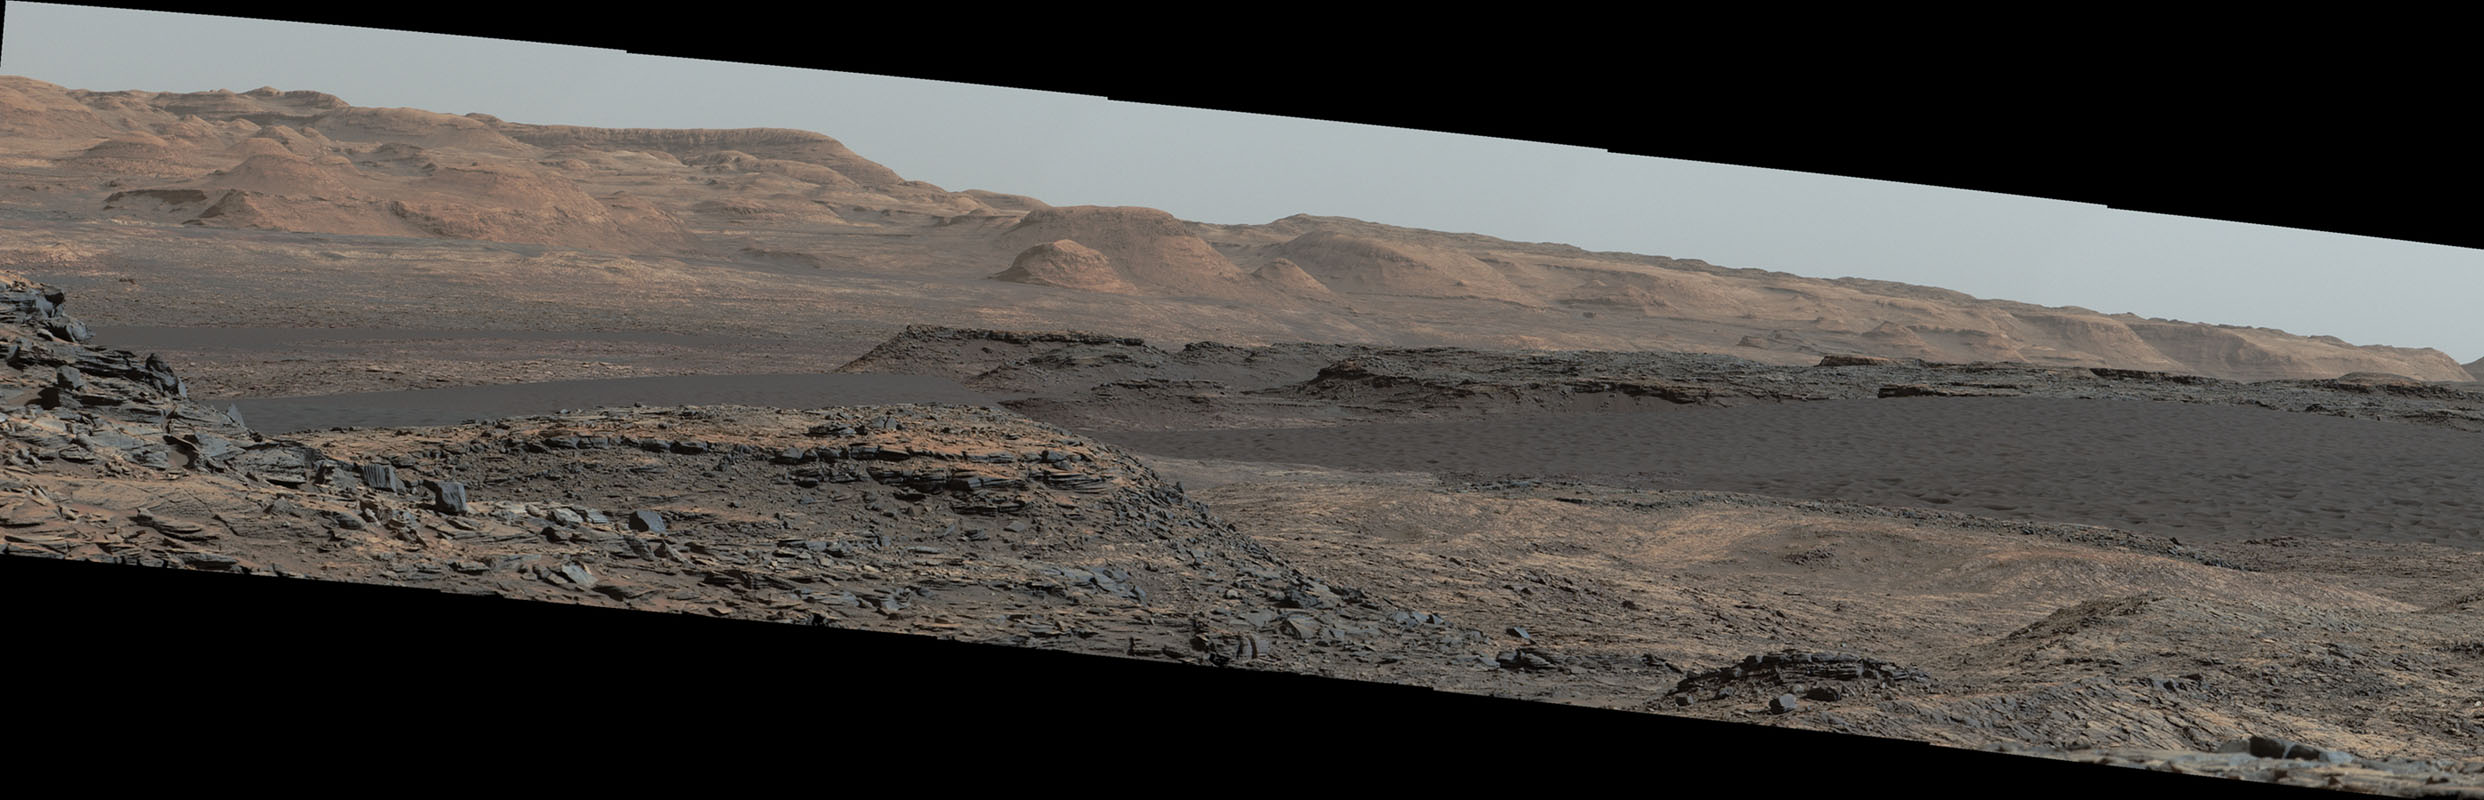 Space Images   Curiosity Rover Will Study Dunes on Route ...